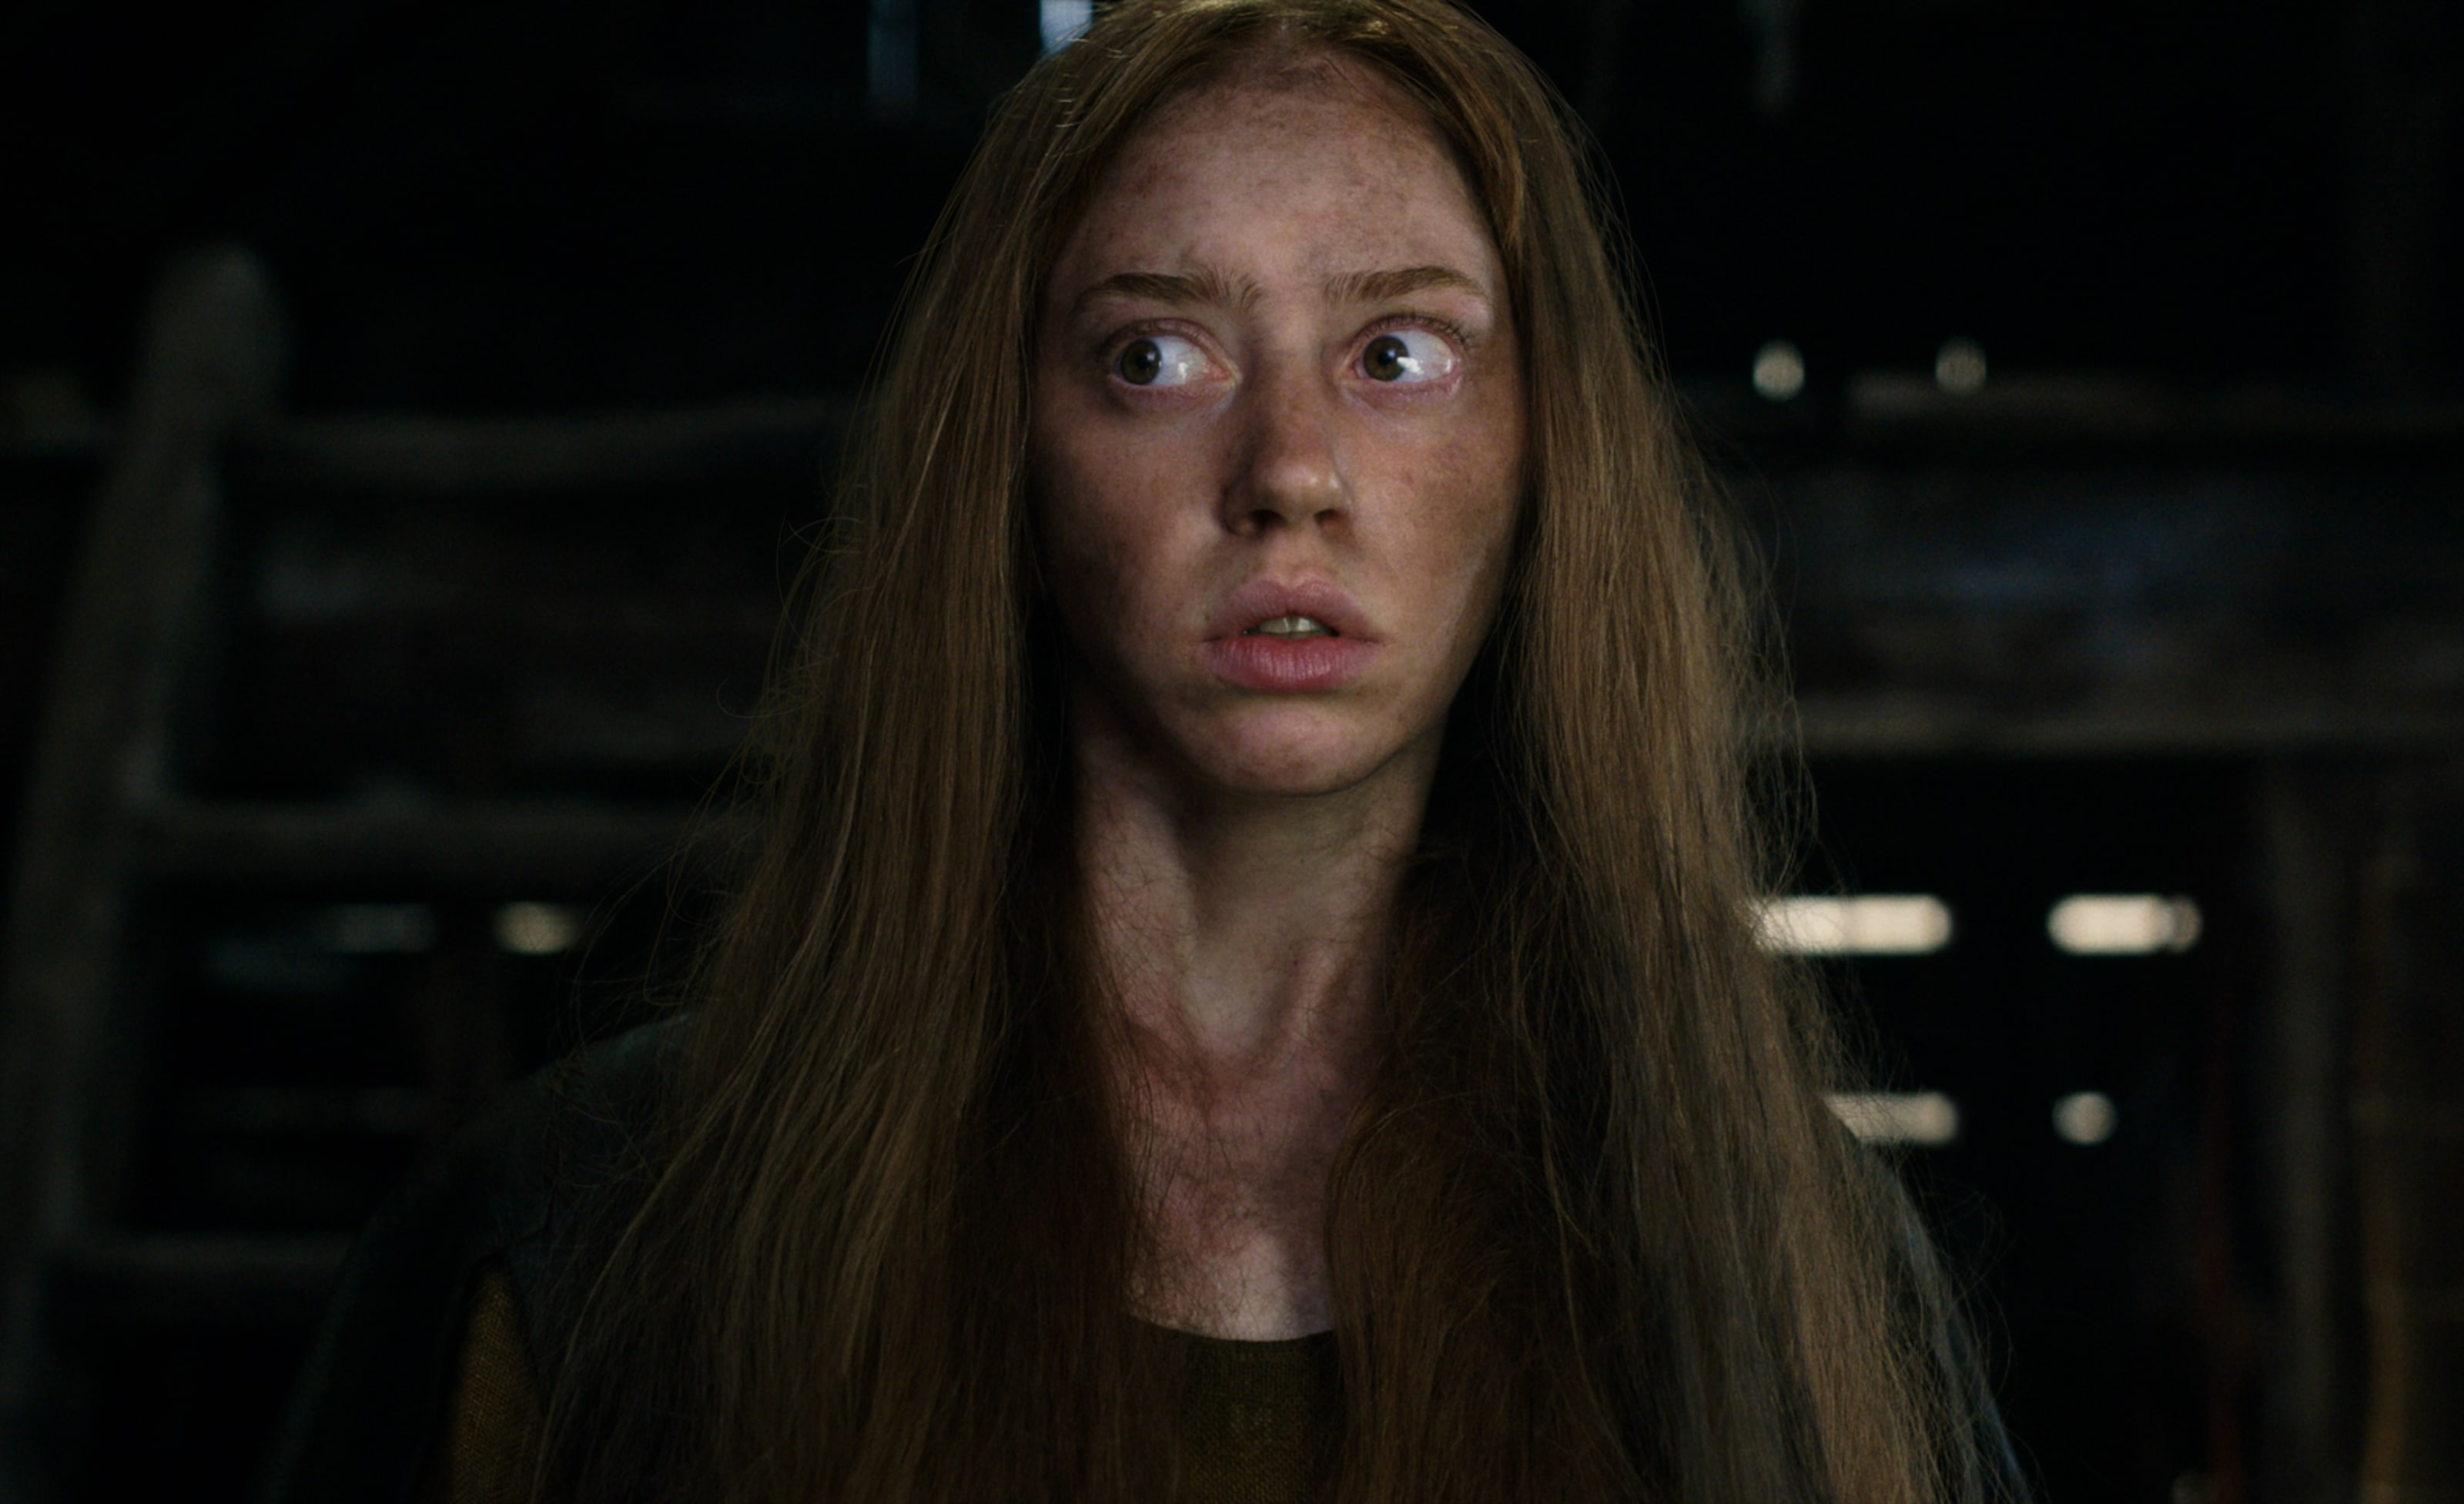 LILY NEWMARK in Netflix's Cursed